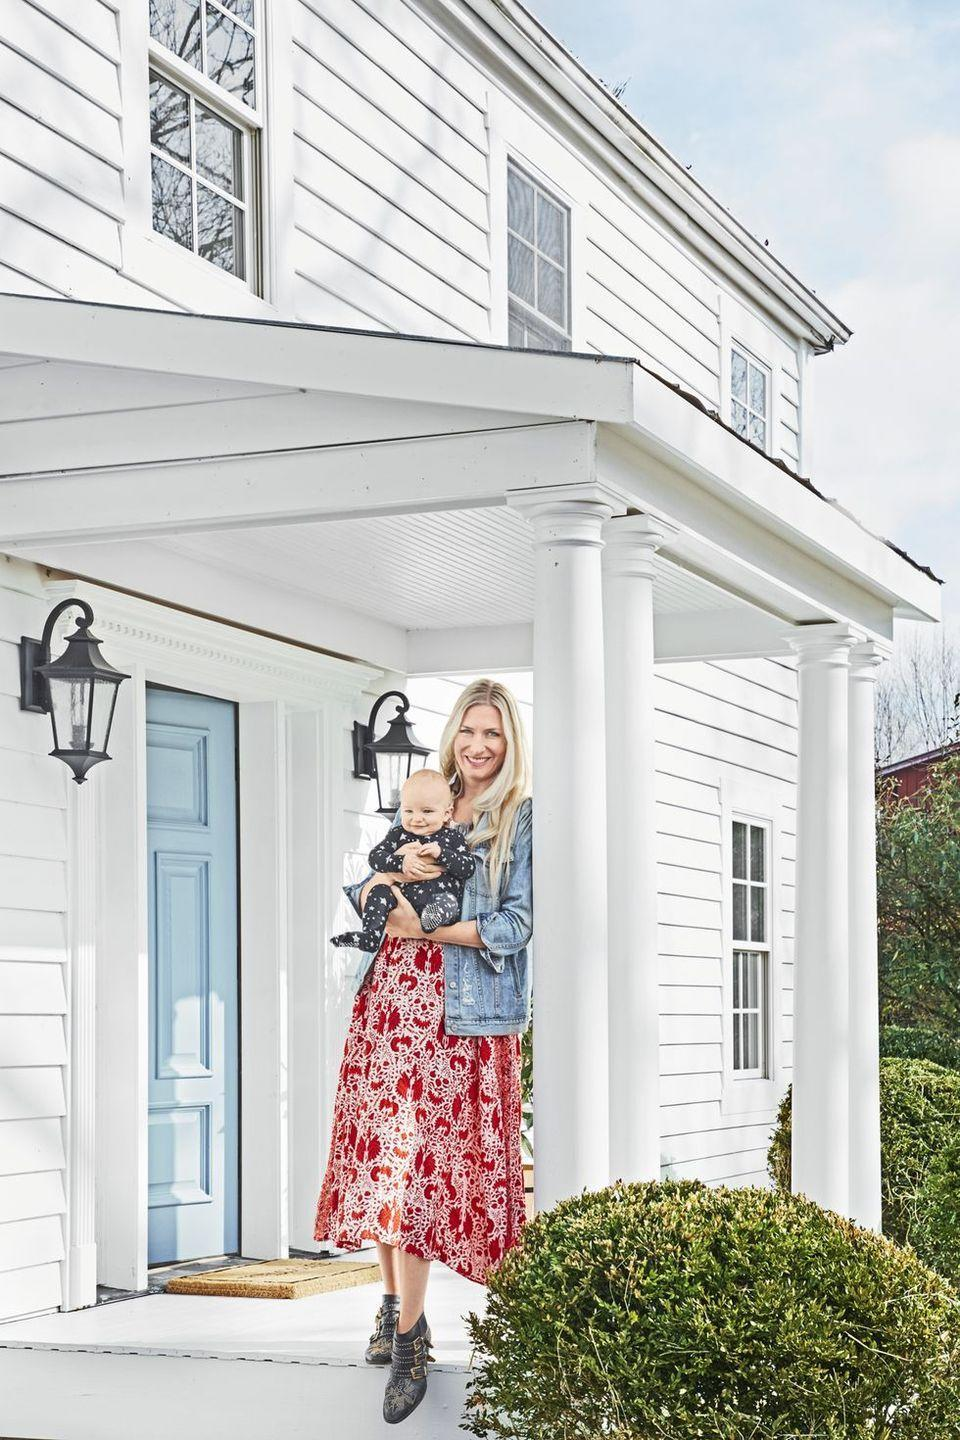 """<p>A crisp white exterior gets broken up with a delicate shade of baby blue and gray metal lights.</p><p><a class=""""link rapid-noclick-resp"""" href=""""https://go.redirectingat.com?id=74968X1596630&url=https%3A%2F%2Fwww.homedepot.com%2Fp%2FBEHR-ULTRA-1-gal-MQ3-24-Celestial-Light-Semi-Gloss-Enamel-Interior-Paint-and-Primer-in-One-375001%2F303935130&sref=https%3A%2F%2Fwww.countryliving.com%2Fhome-design%2Fcolor%2Fg31158913%2Ffront-door-colors%2F"""" rel=""""nofollow noopener"""" target=""""_blank"""" data-ylk=""""slk:SHOP BLUE PAINT"""">SHOP BLUE PAINT</a></p>"""